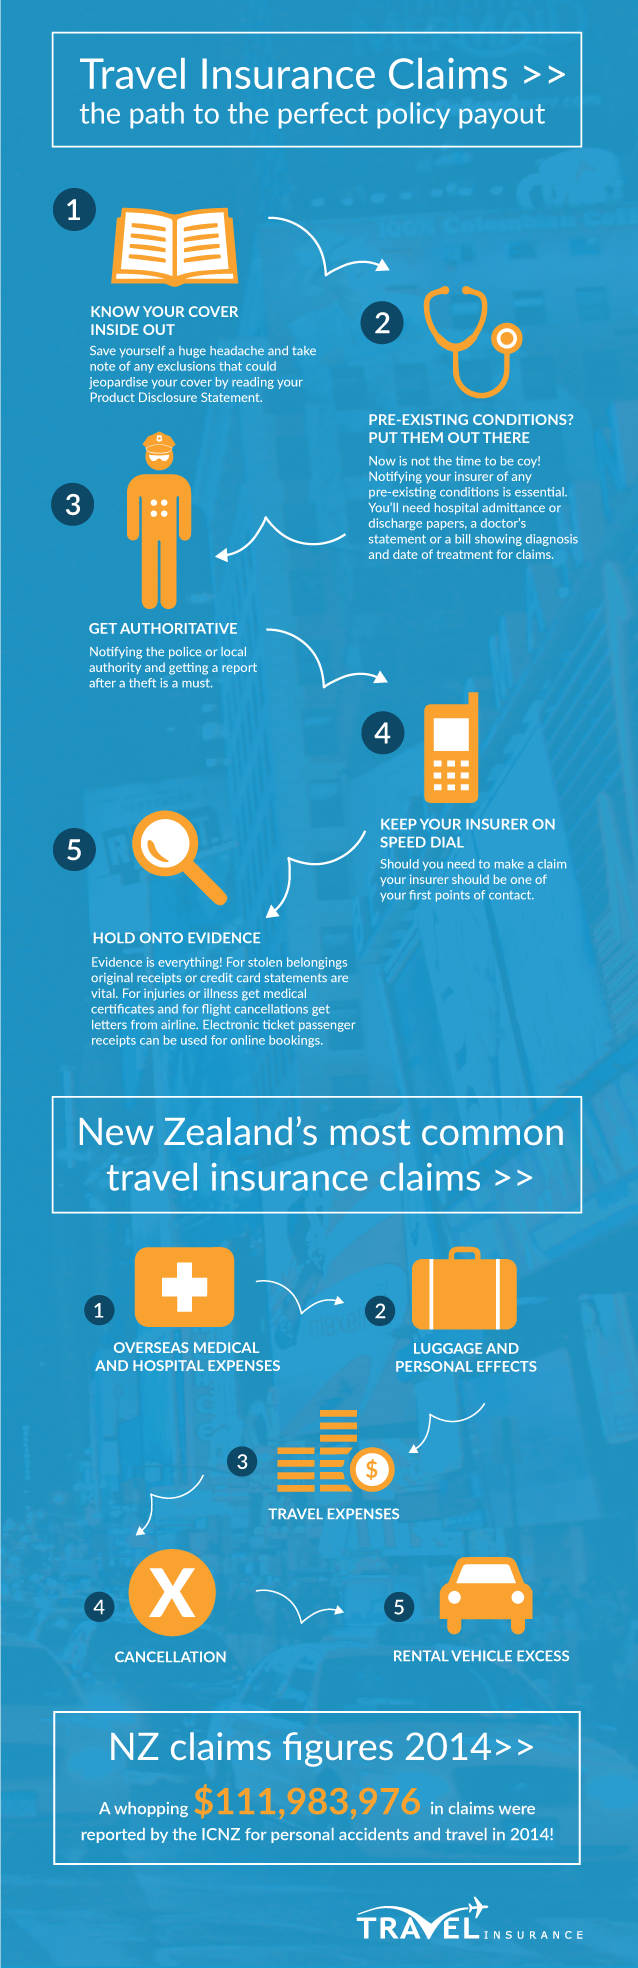 Travel Insurance Claims - the Path to a Perfect Policy Payout #infographic